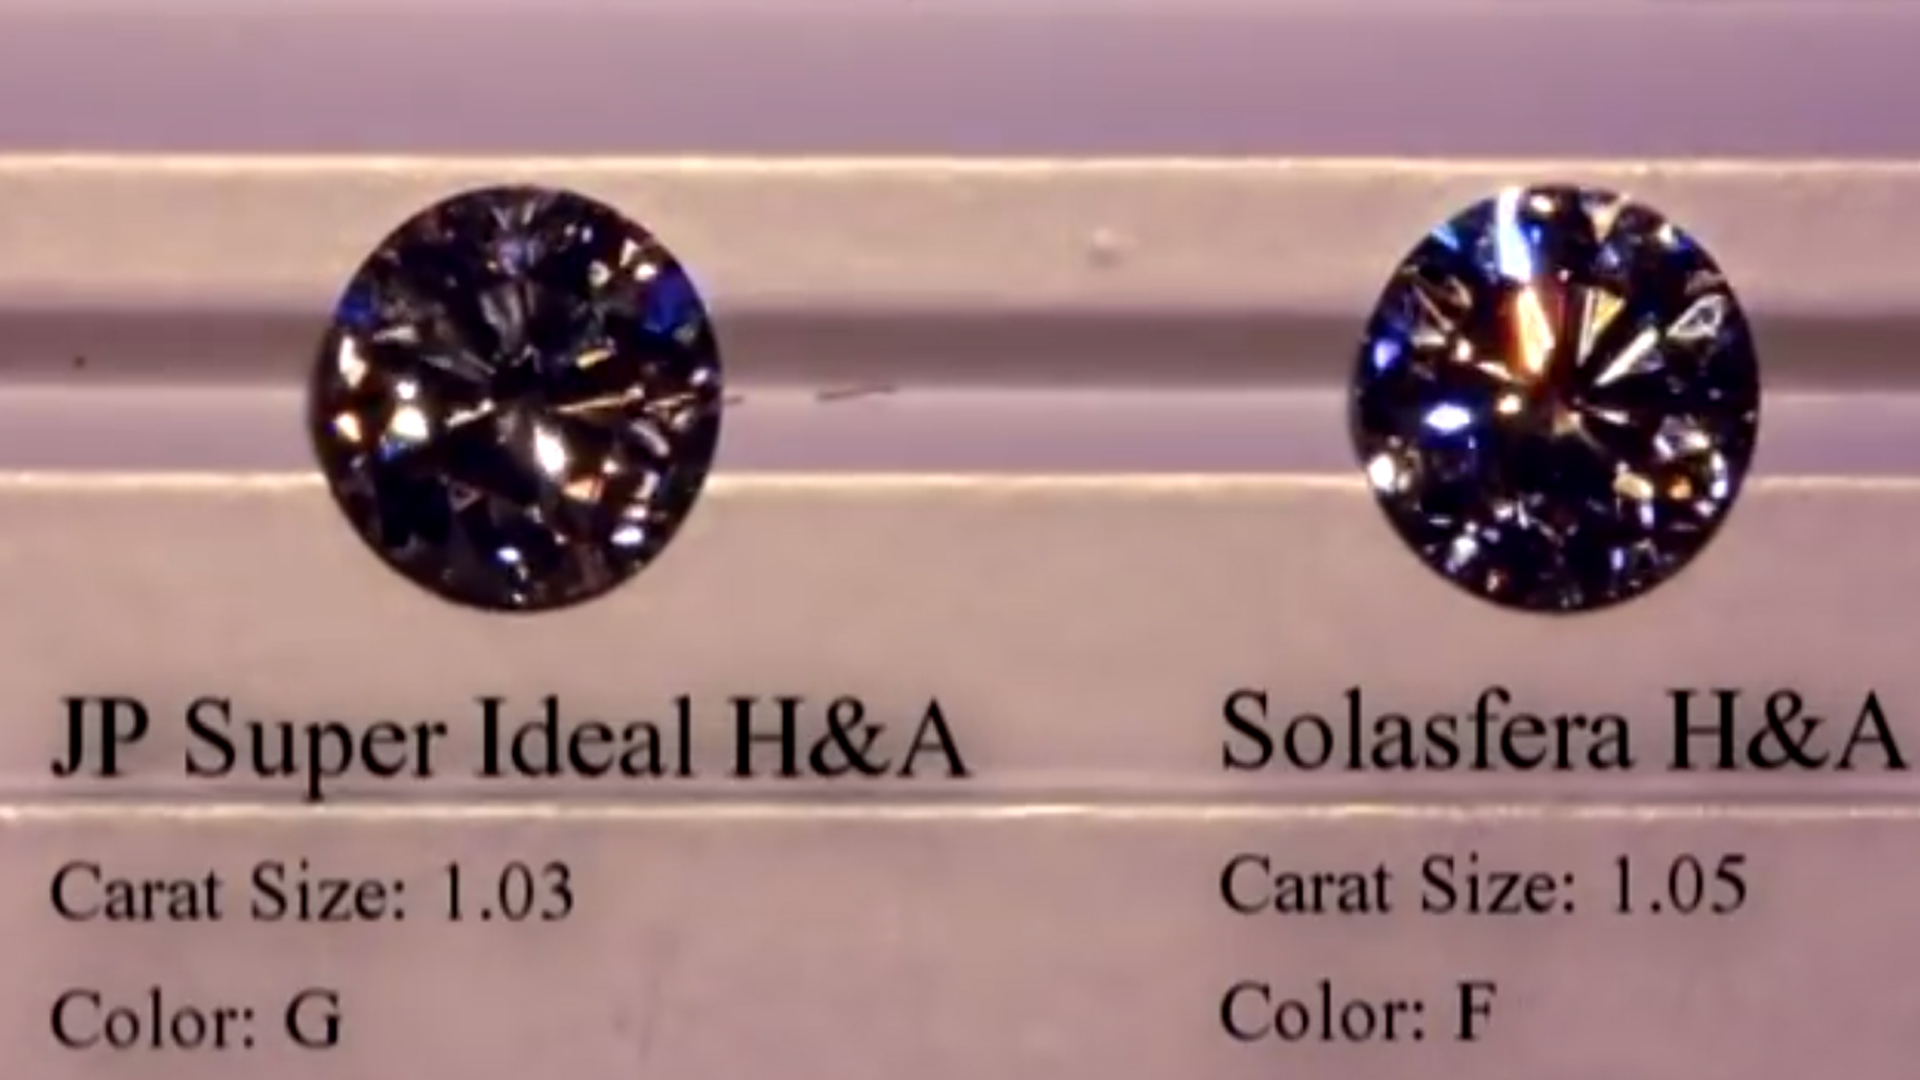 JannPaul: Comparing GIA Triple Excellent Round Diamond with Signature Cuts